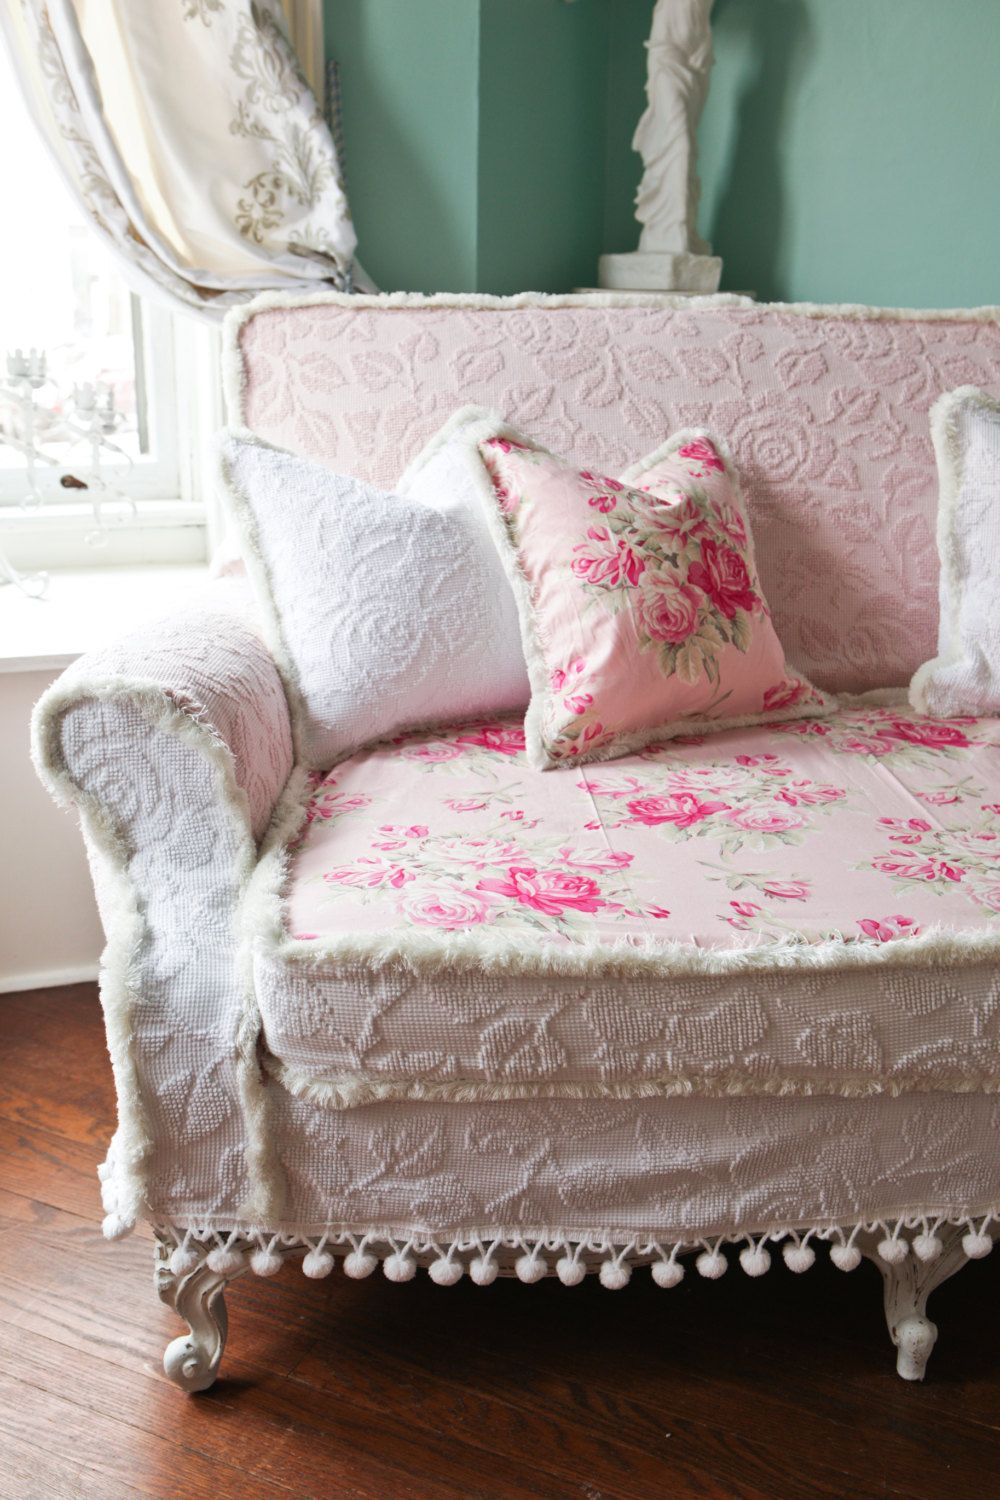 Couch Shabby Chic Shabby Chic Couch Sofa Cottage White Pink Antique Vintage Prairie